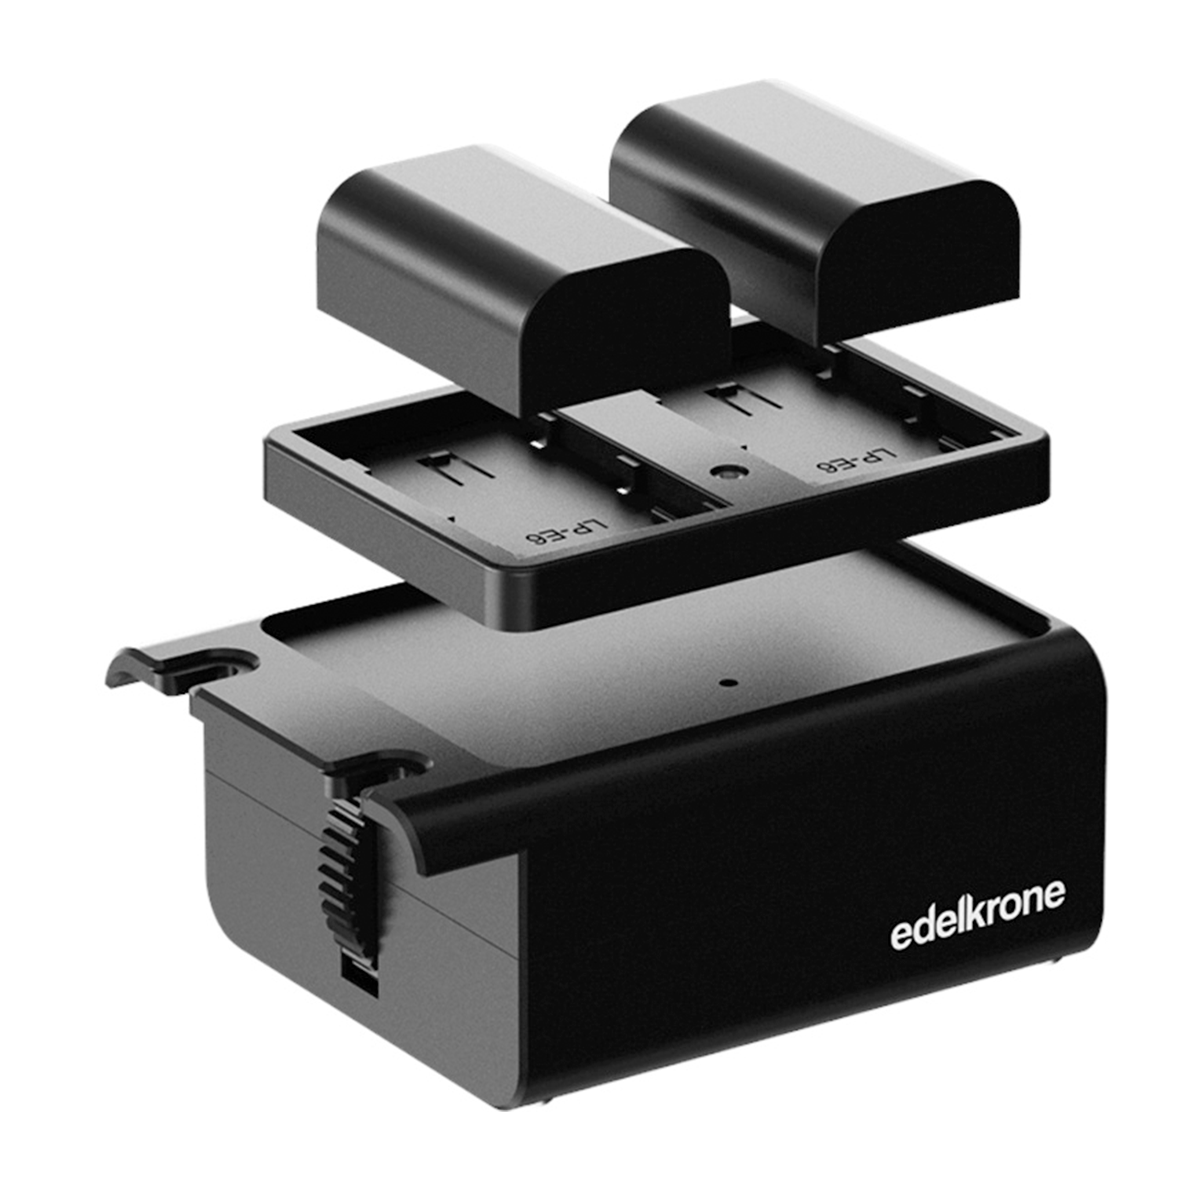 Edelkrone Slide moduleb